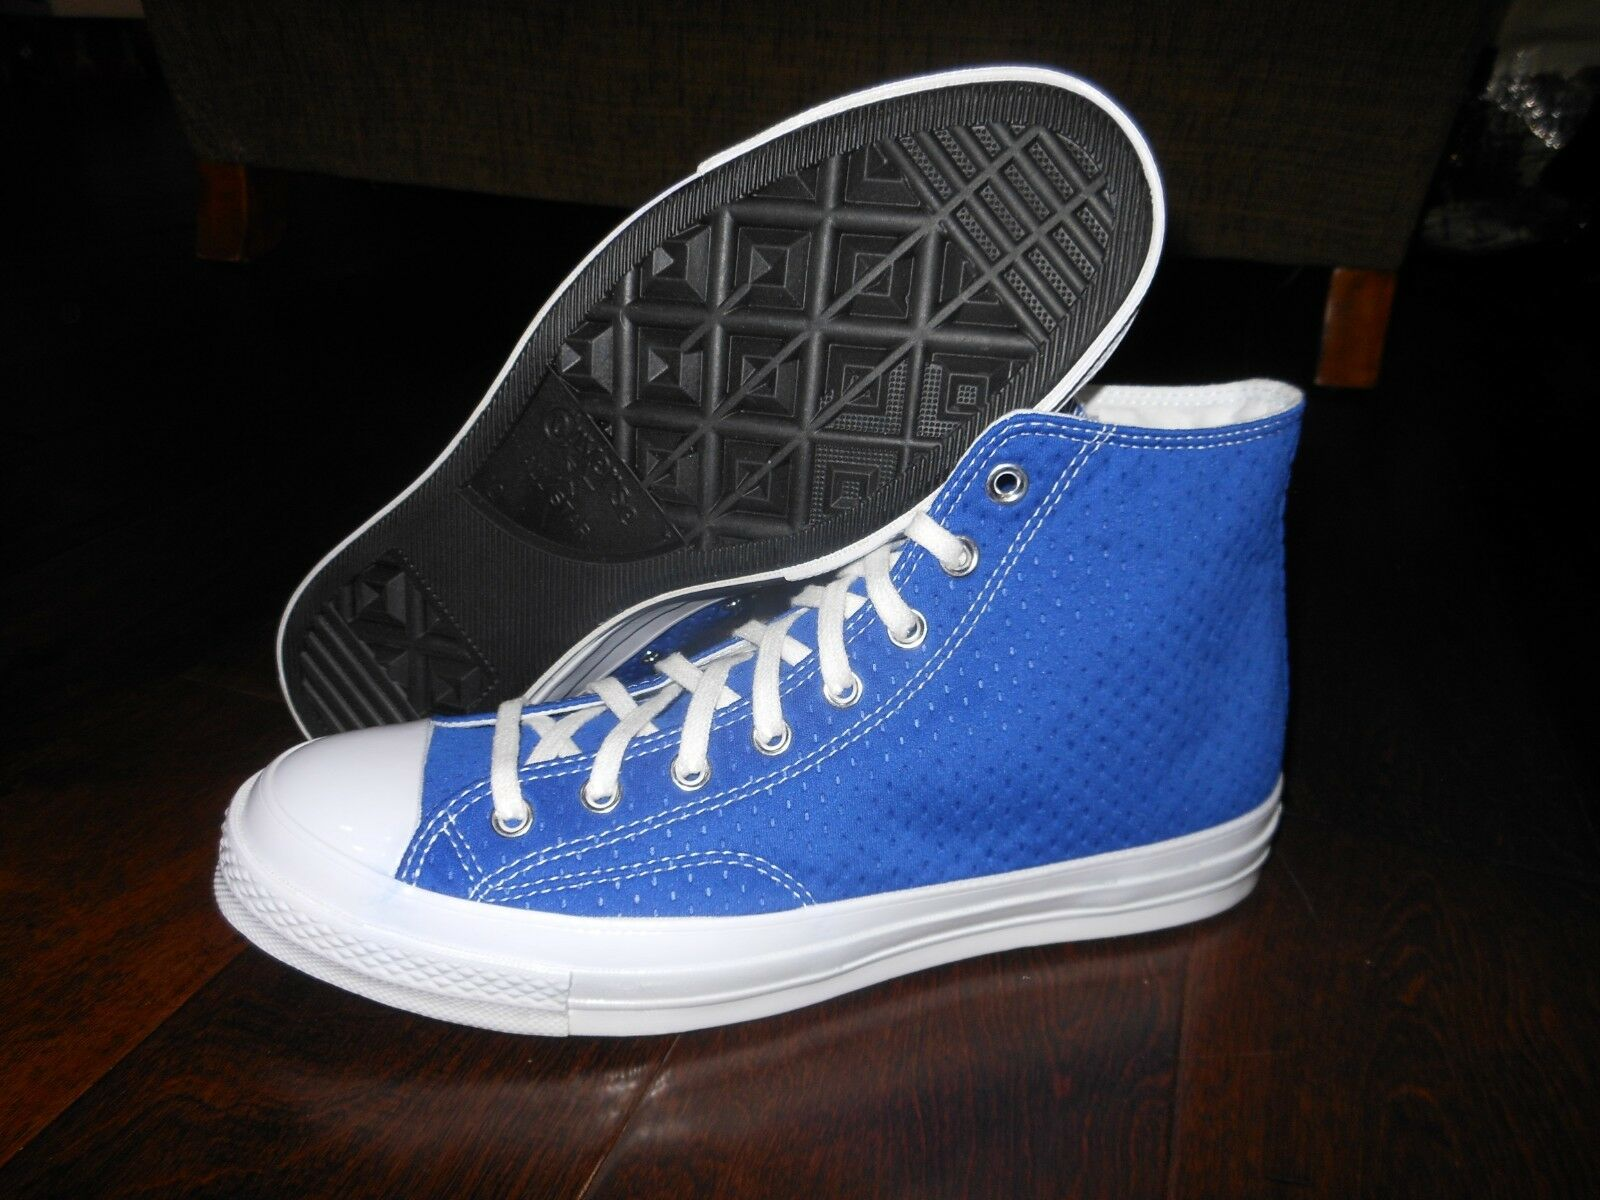 CONVERSE CTAS 70's Blank Canvas NY 156300C shoes Size 10 US 44 EUR Ultrasonicblue